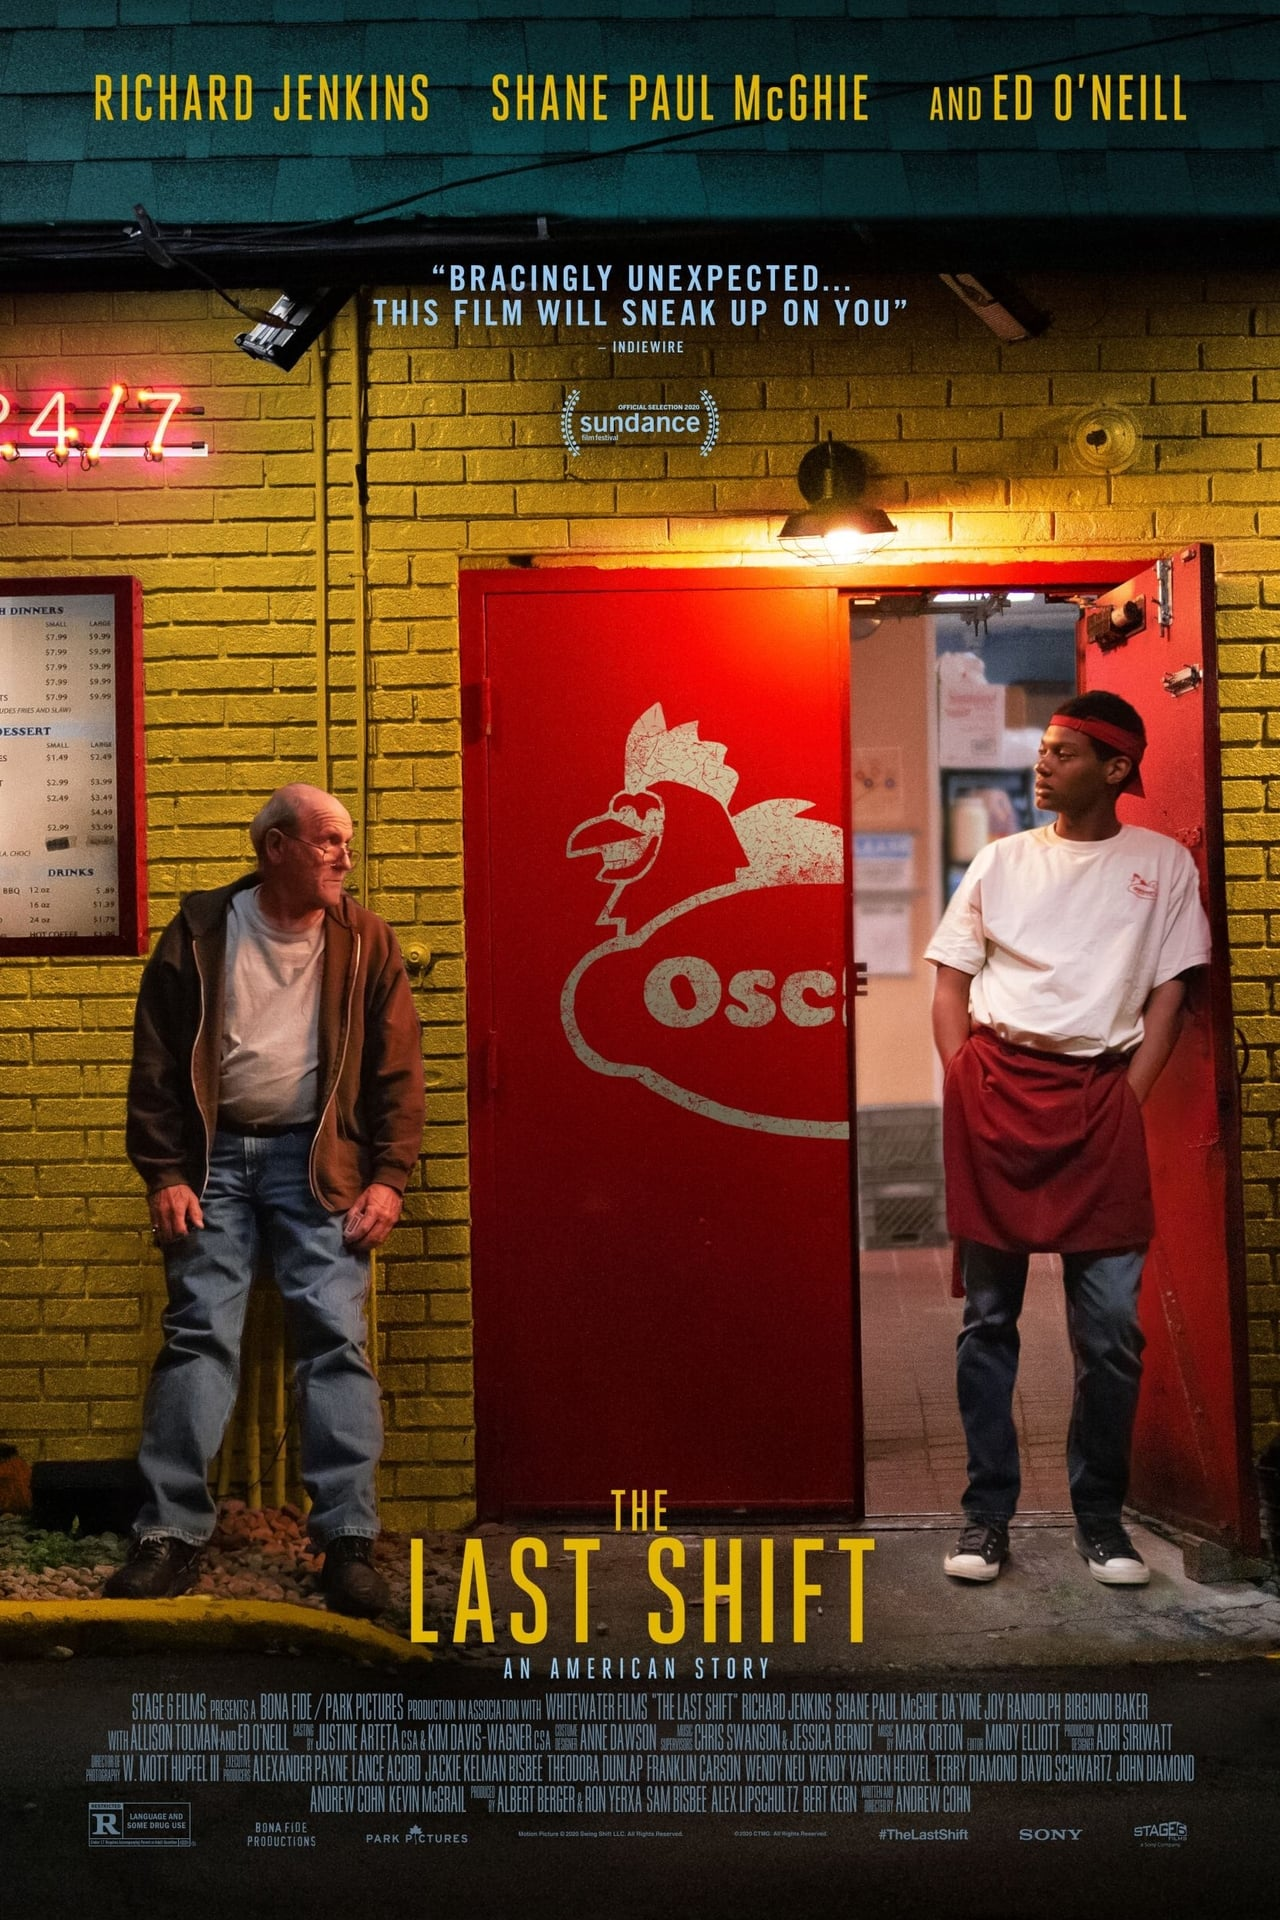 Watch The Last Shift (2020) Movie Trailer at thrill.movieonrails.com